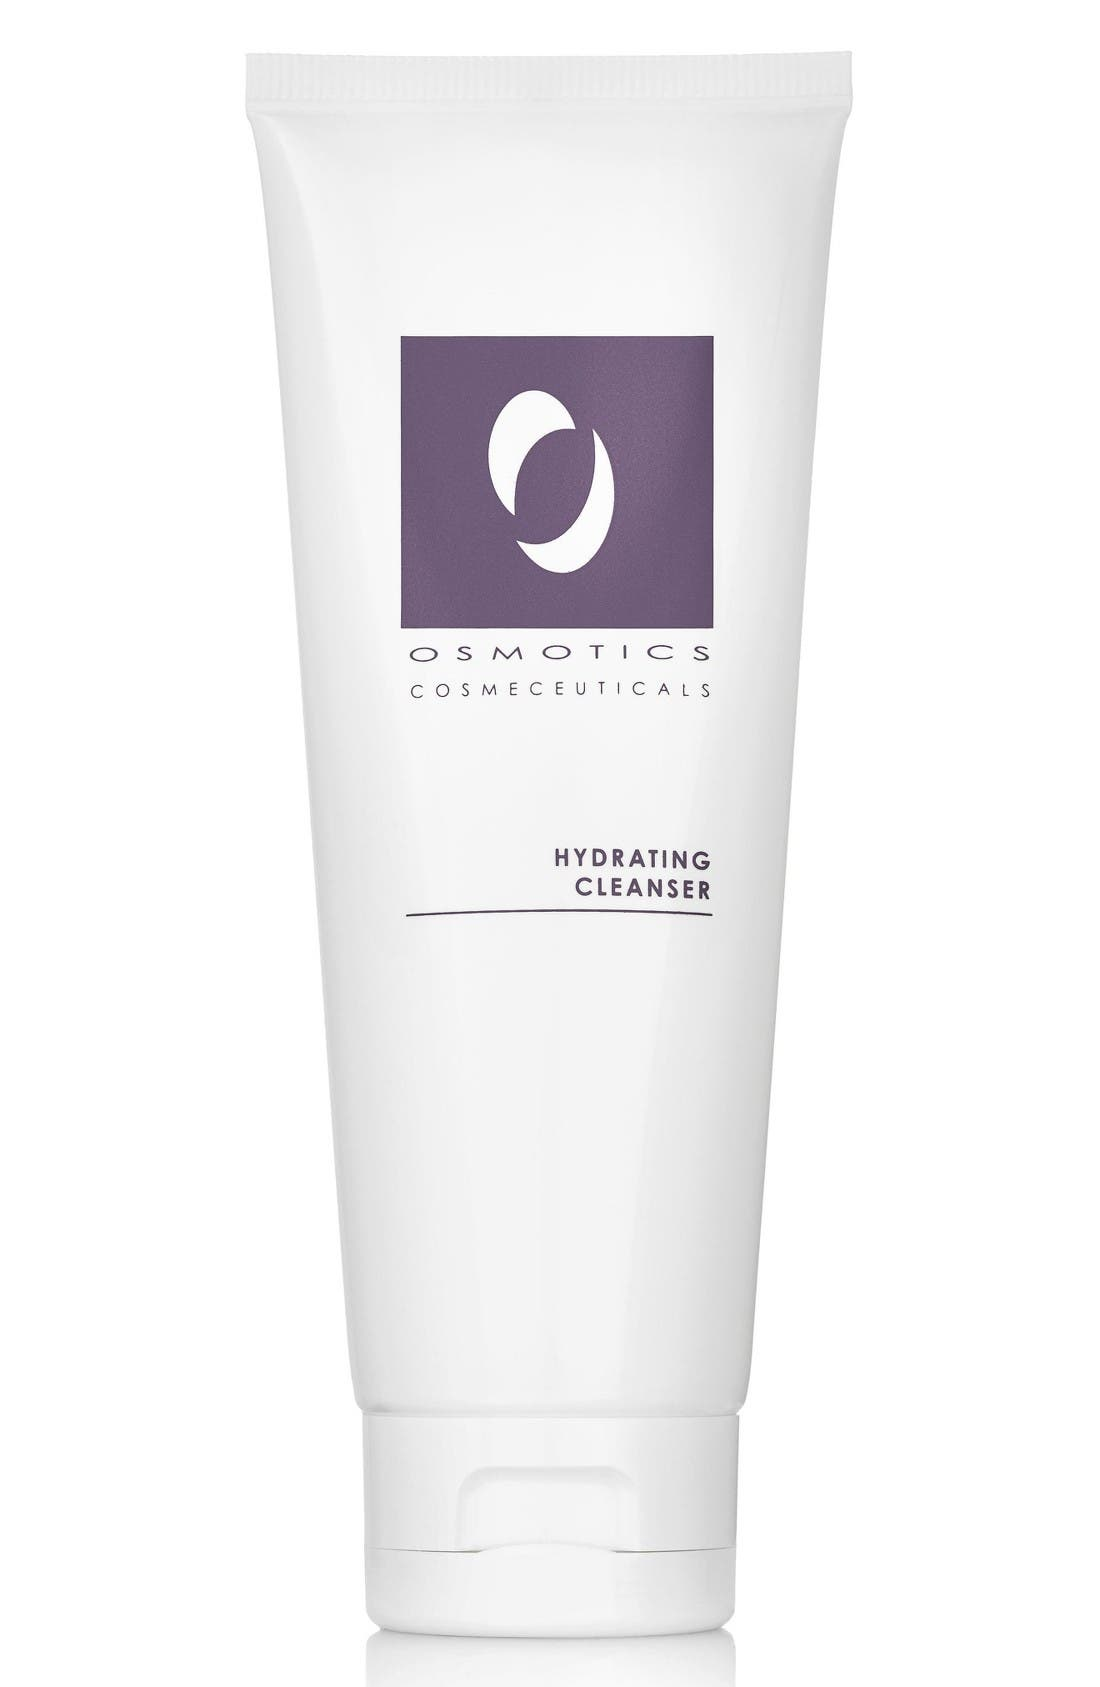 Osmotics Cosmeceuticals Hydrating Cleanser